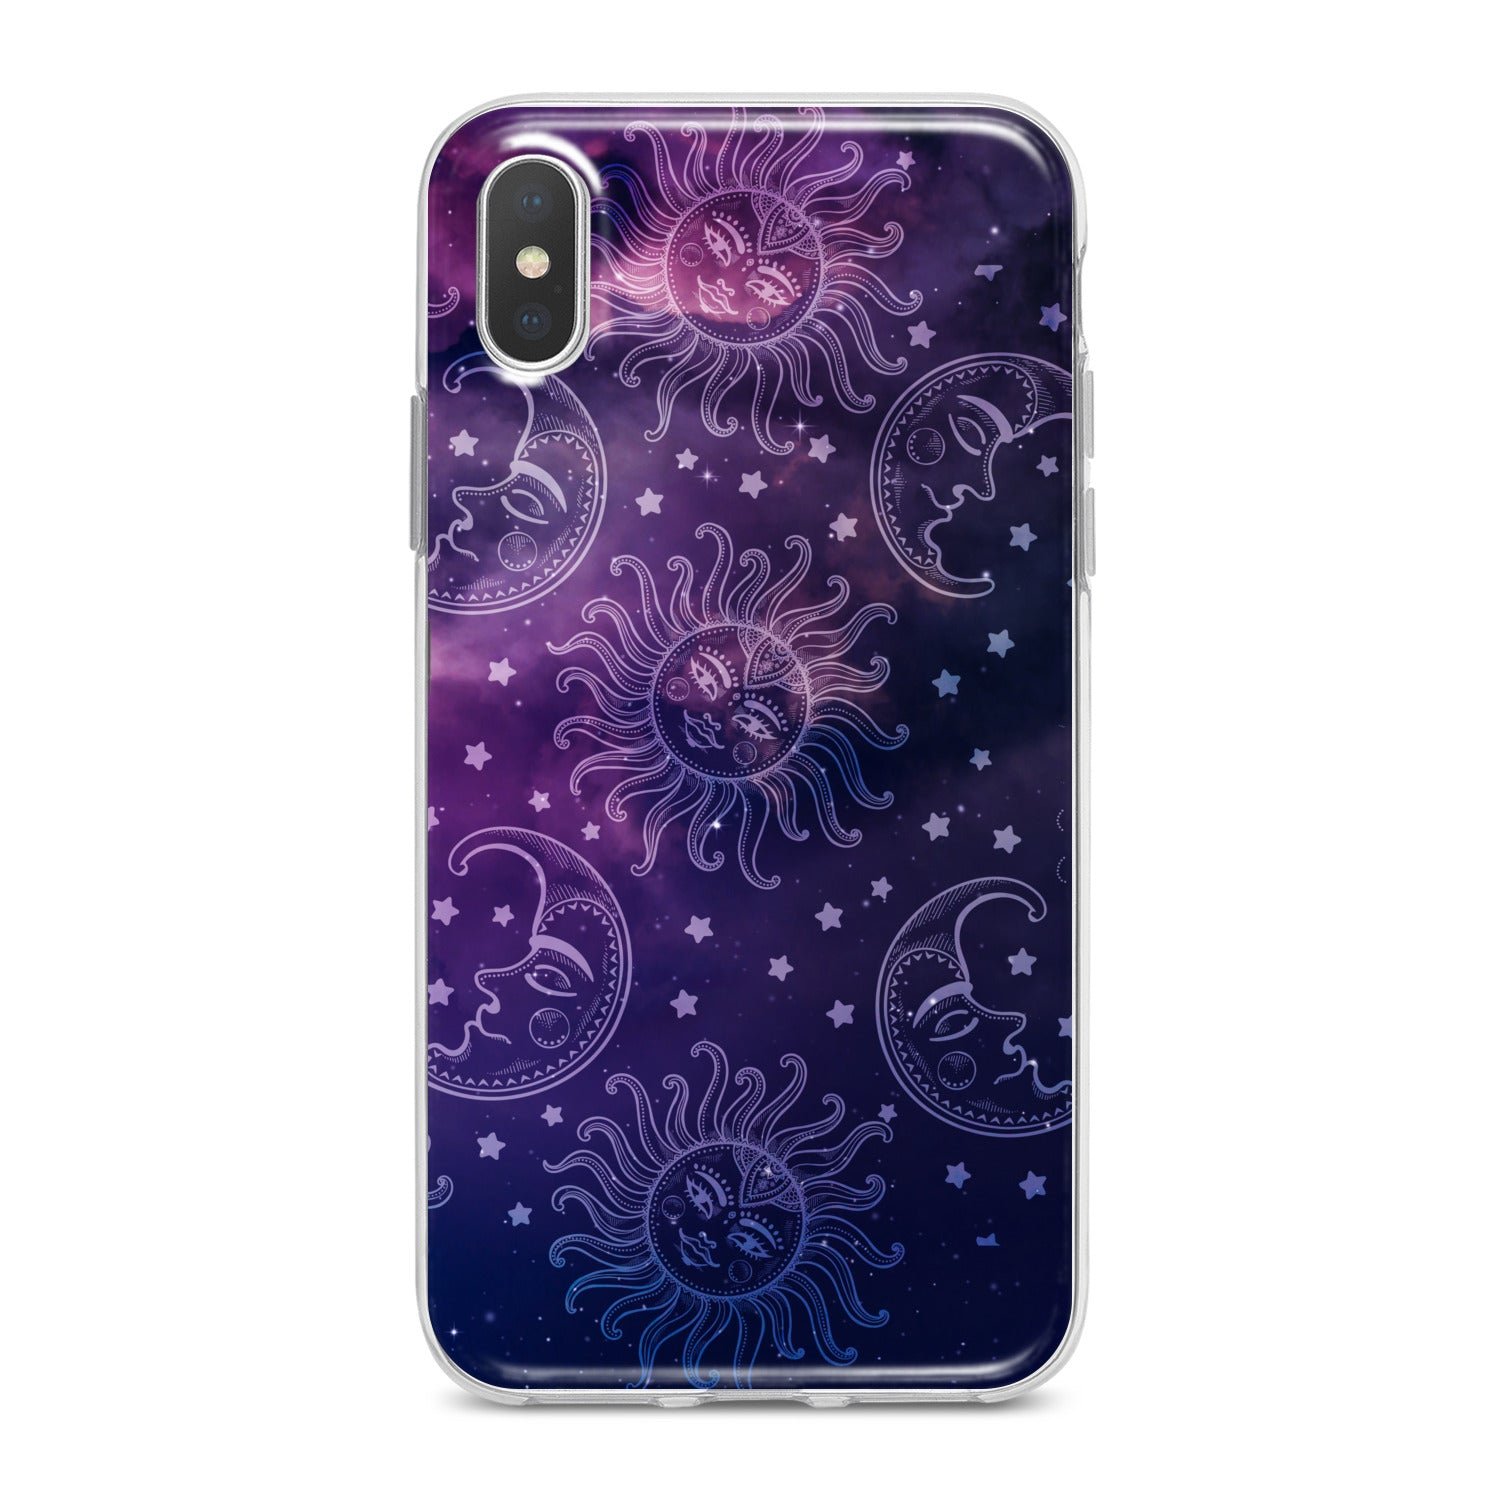 Lex Altern Celestial Beauty Phone Case for your iPhone & Android phone.